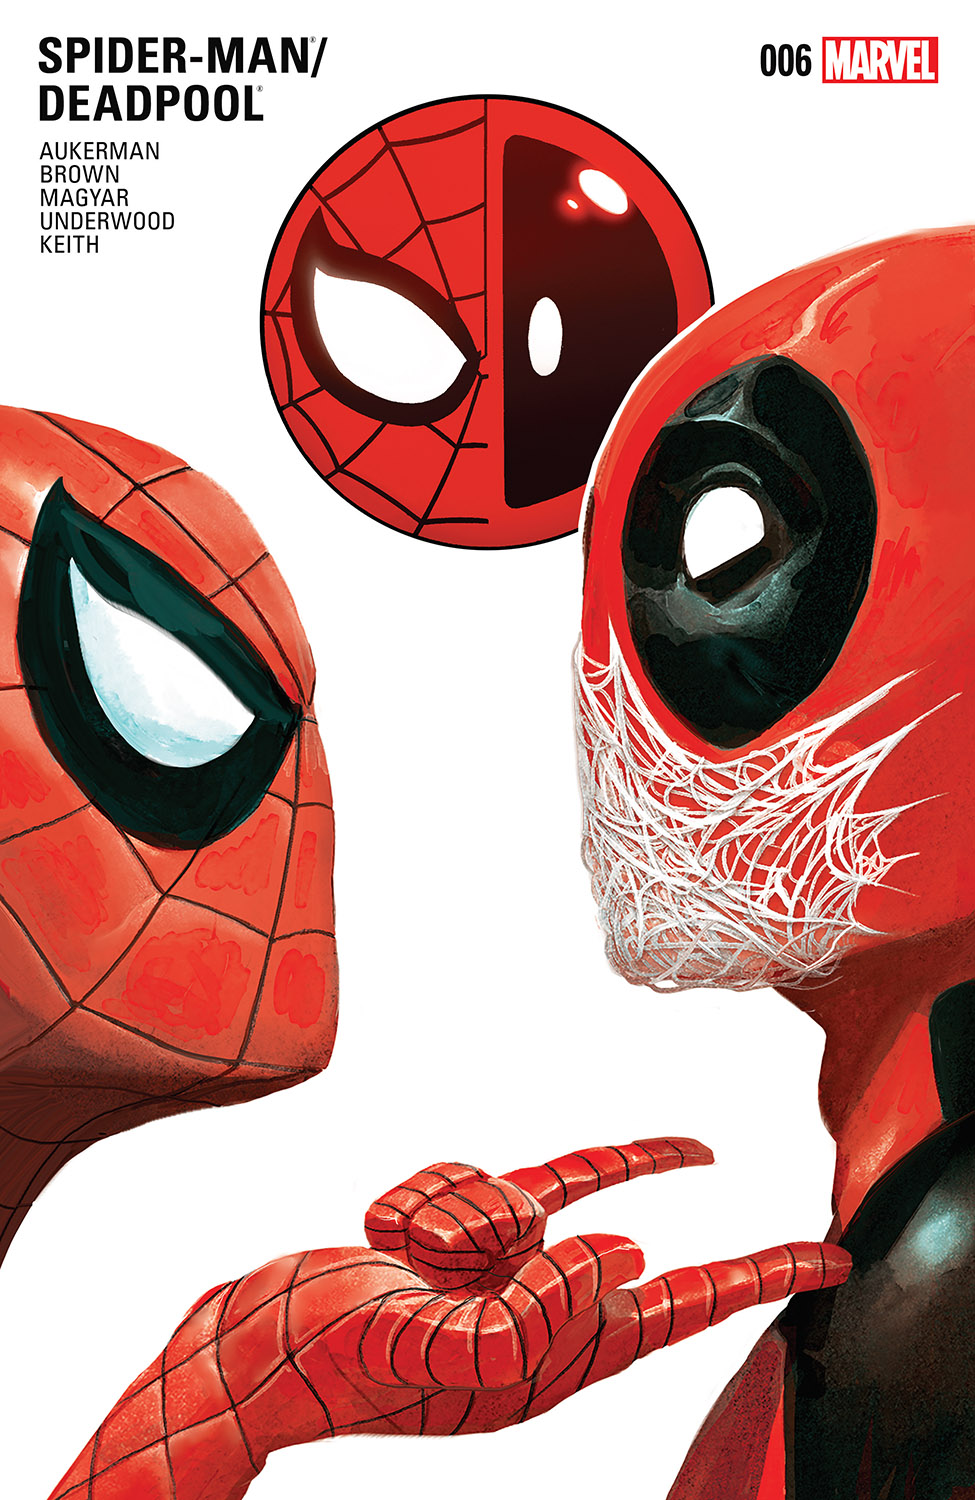 Spider-Man/Deadpool (2016) #6